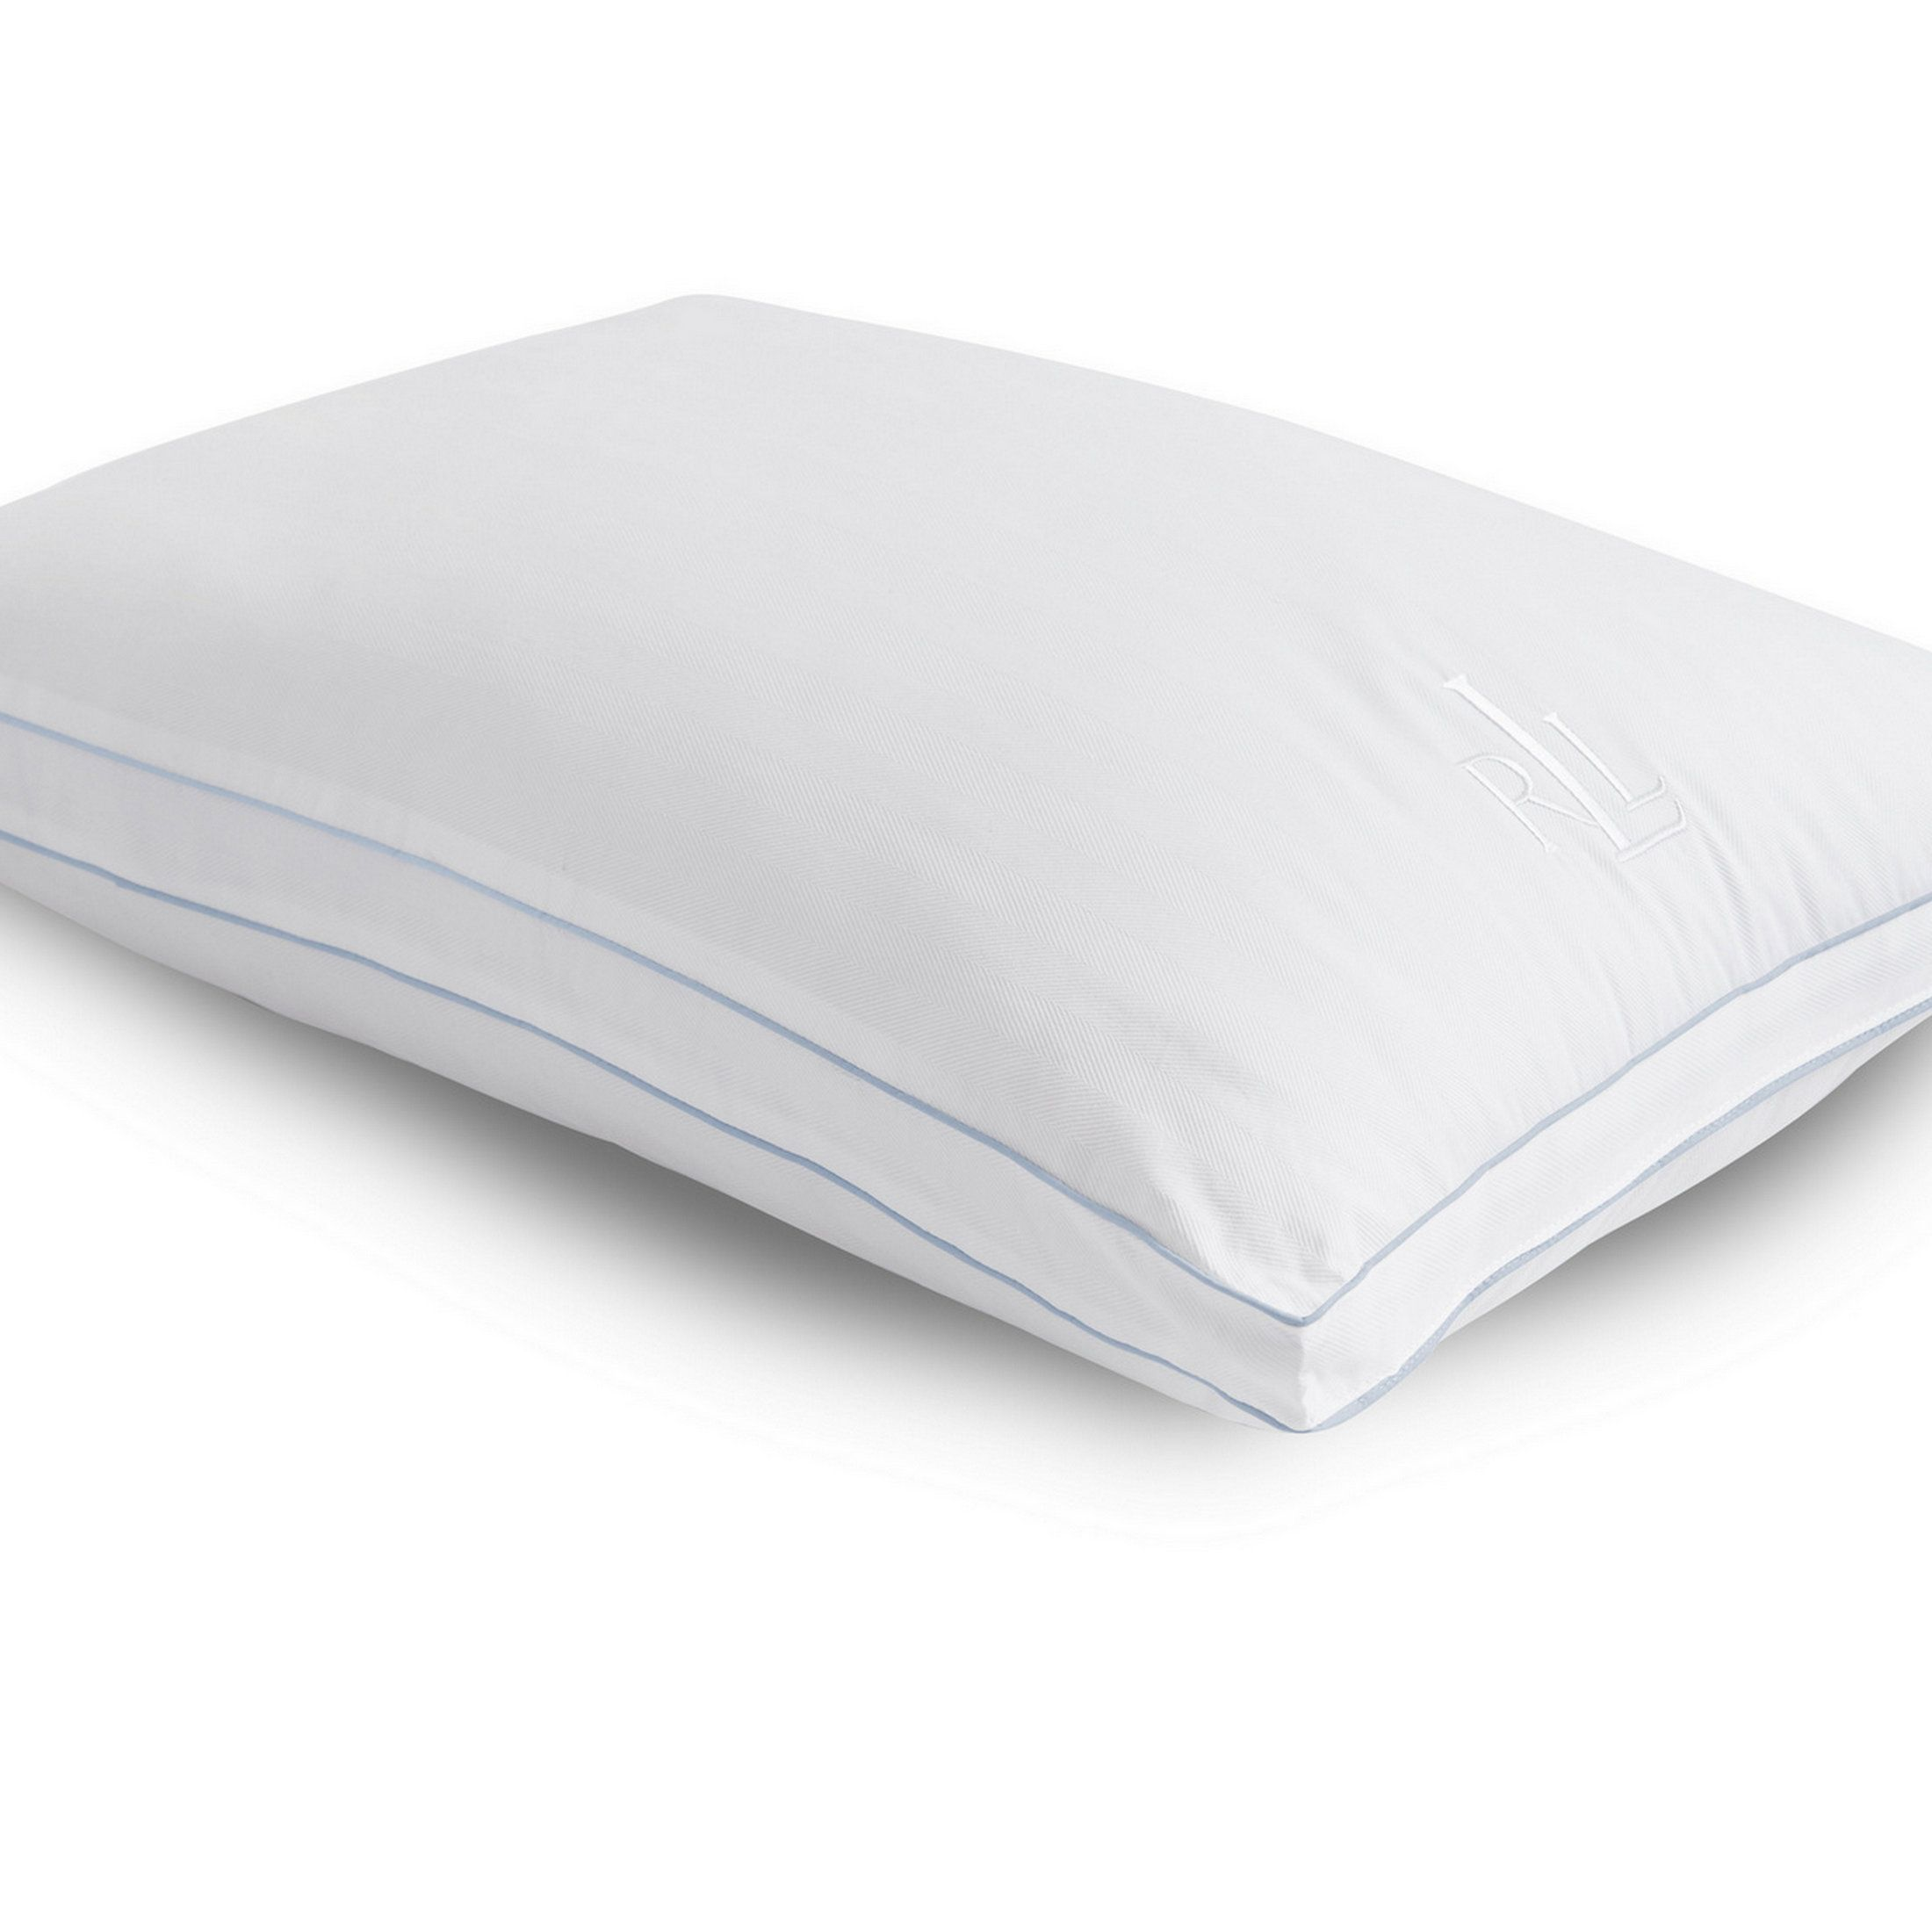 Pin On Pillows Cases